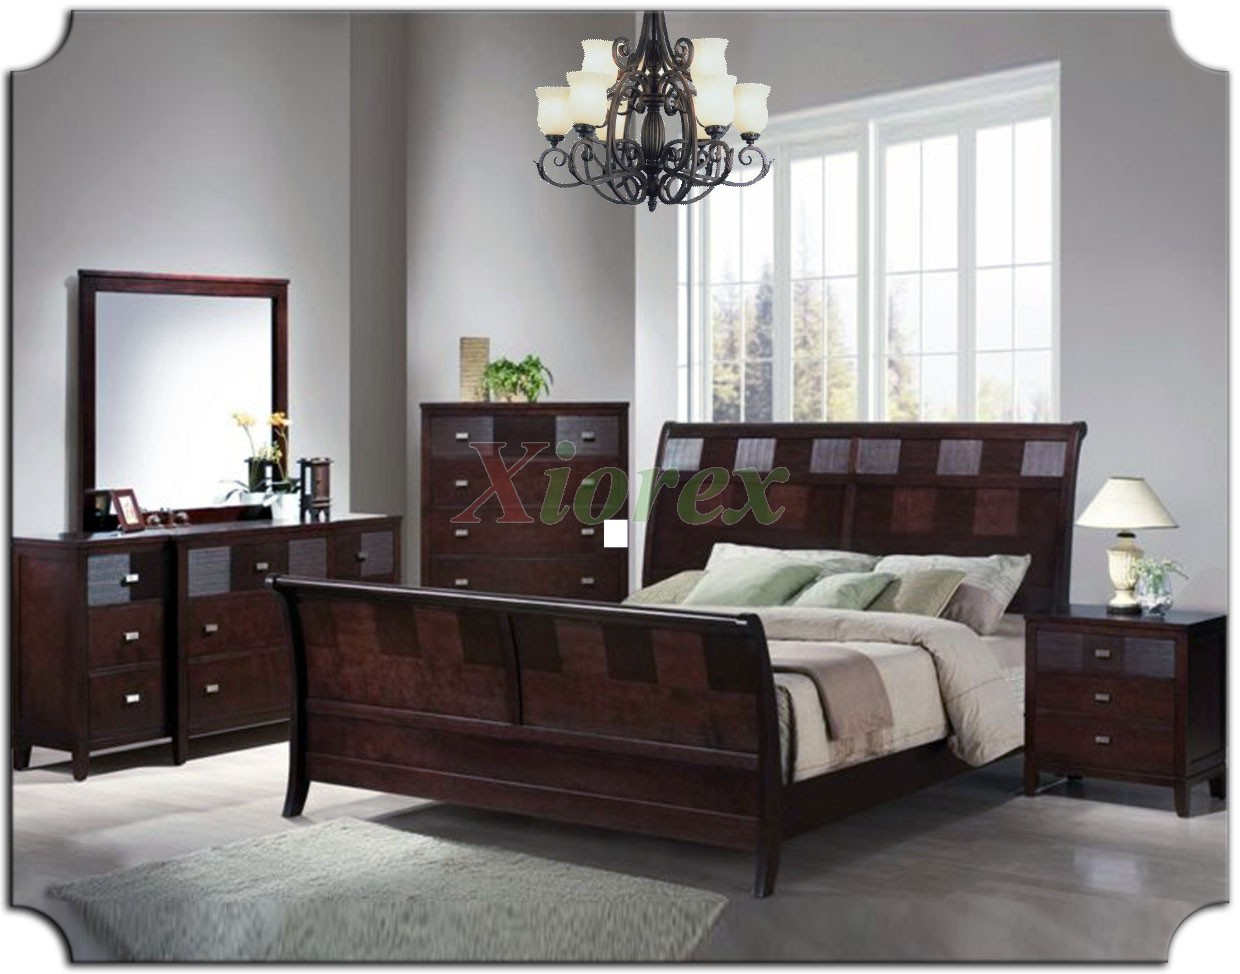 Sleigh bedroom furniture set 131 xiorex for Bedroom furnishings